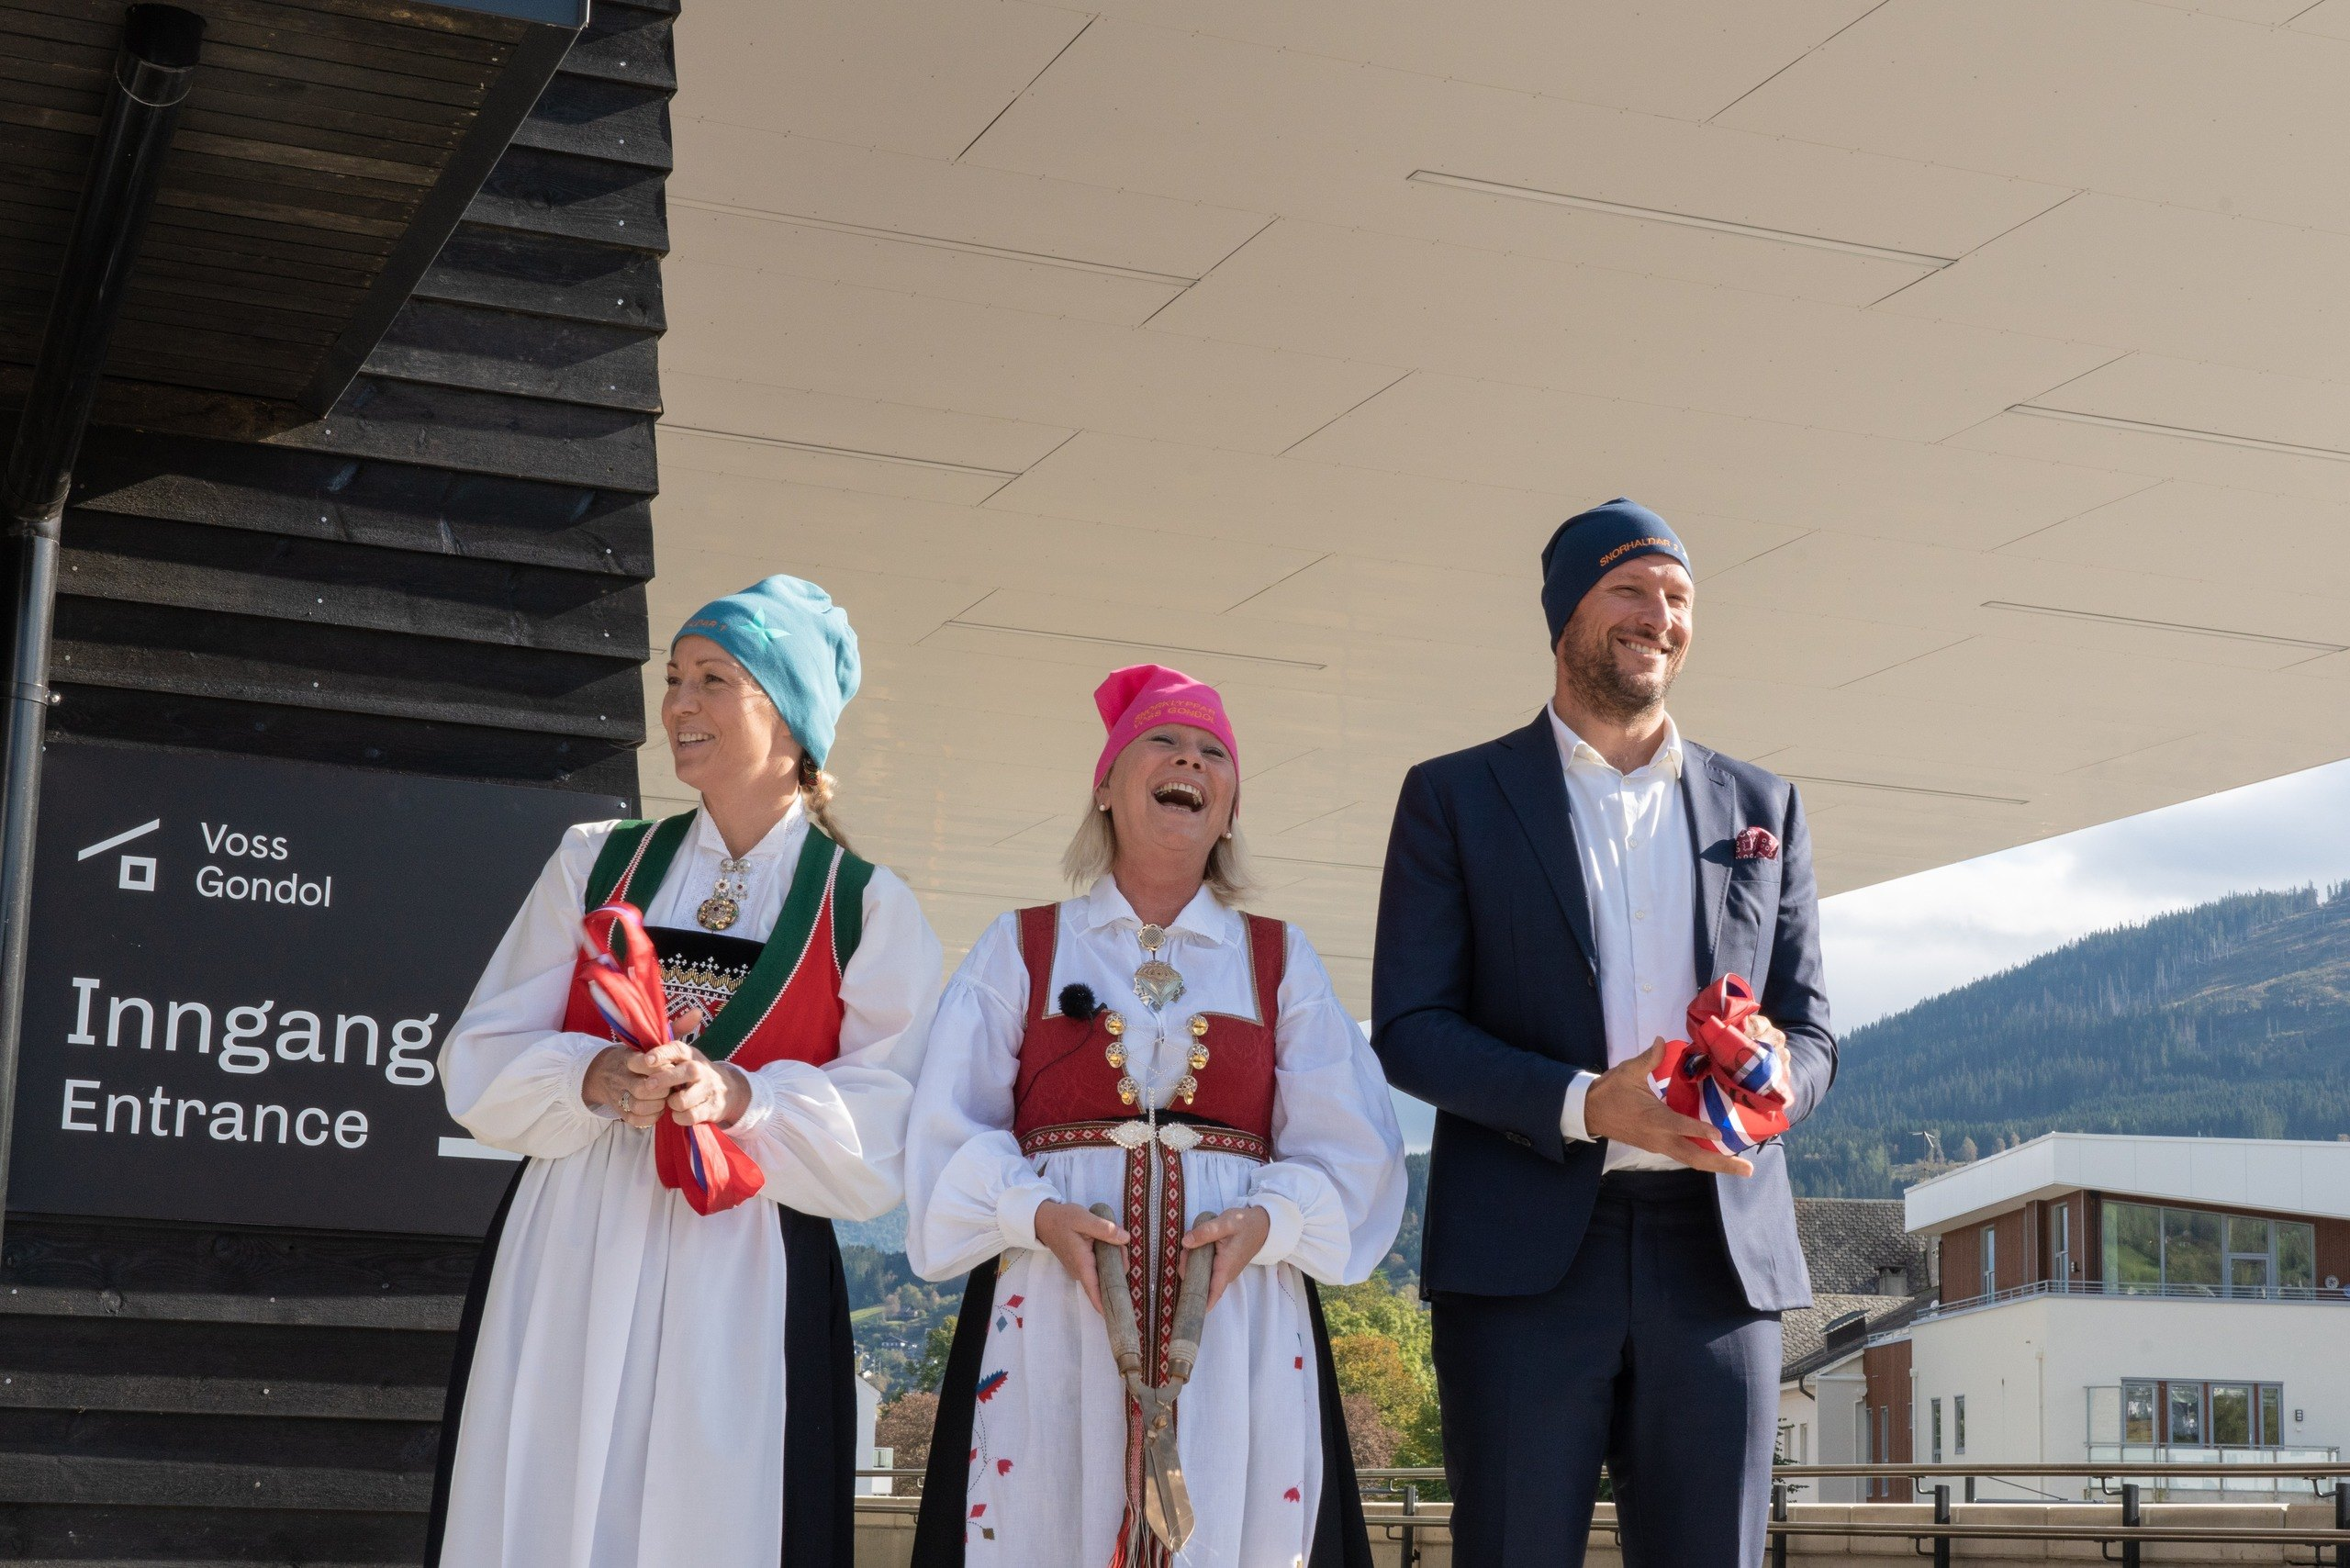 Voss' very own Kari Traa (former olympic freestyle skier), Monica Mæland (Minister of Local Government) and Aksel Lund Svindal (former World Cup and olympic ski racer) Foto: Hunnalvatn Media